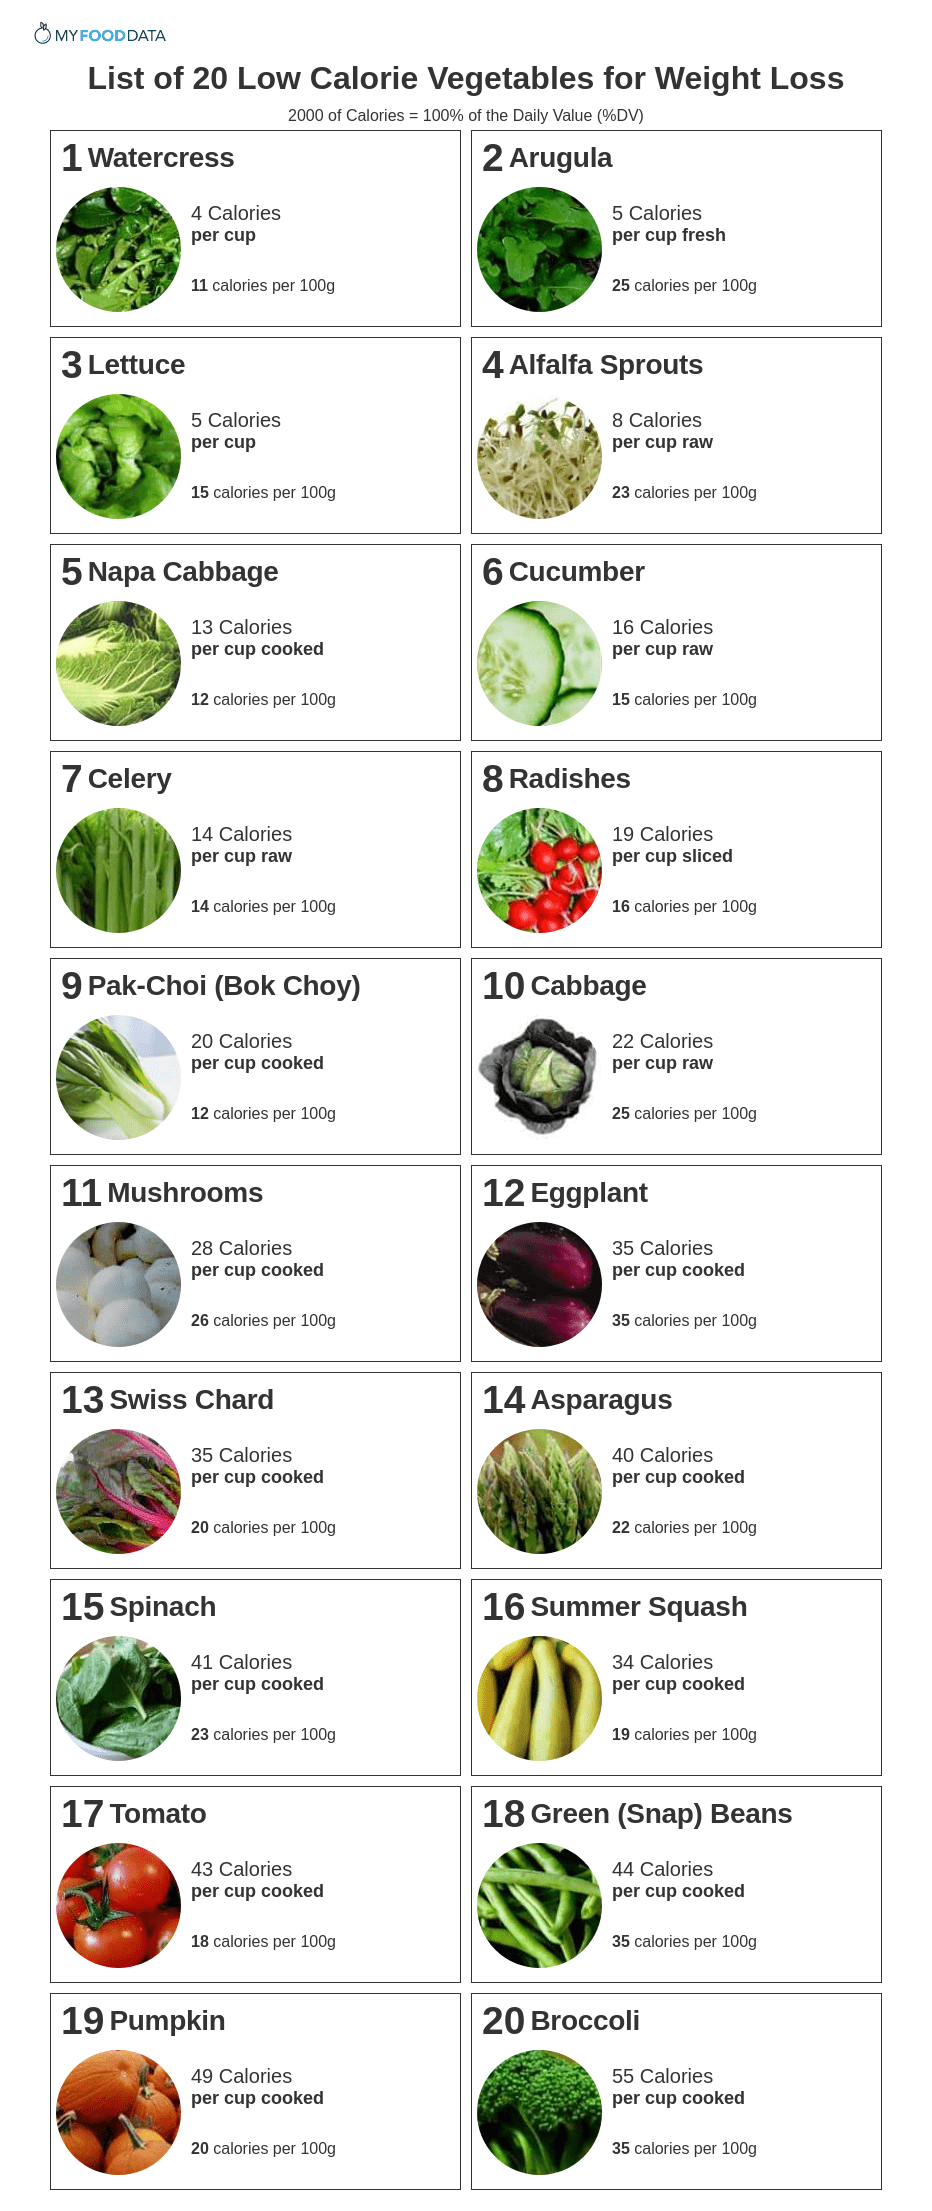 A printable list of vegetables low in calories.